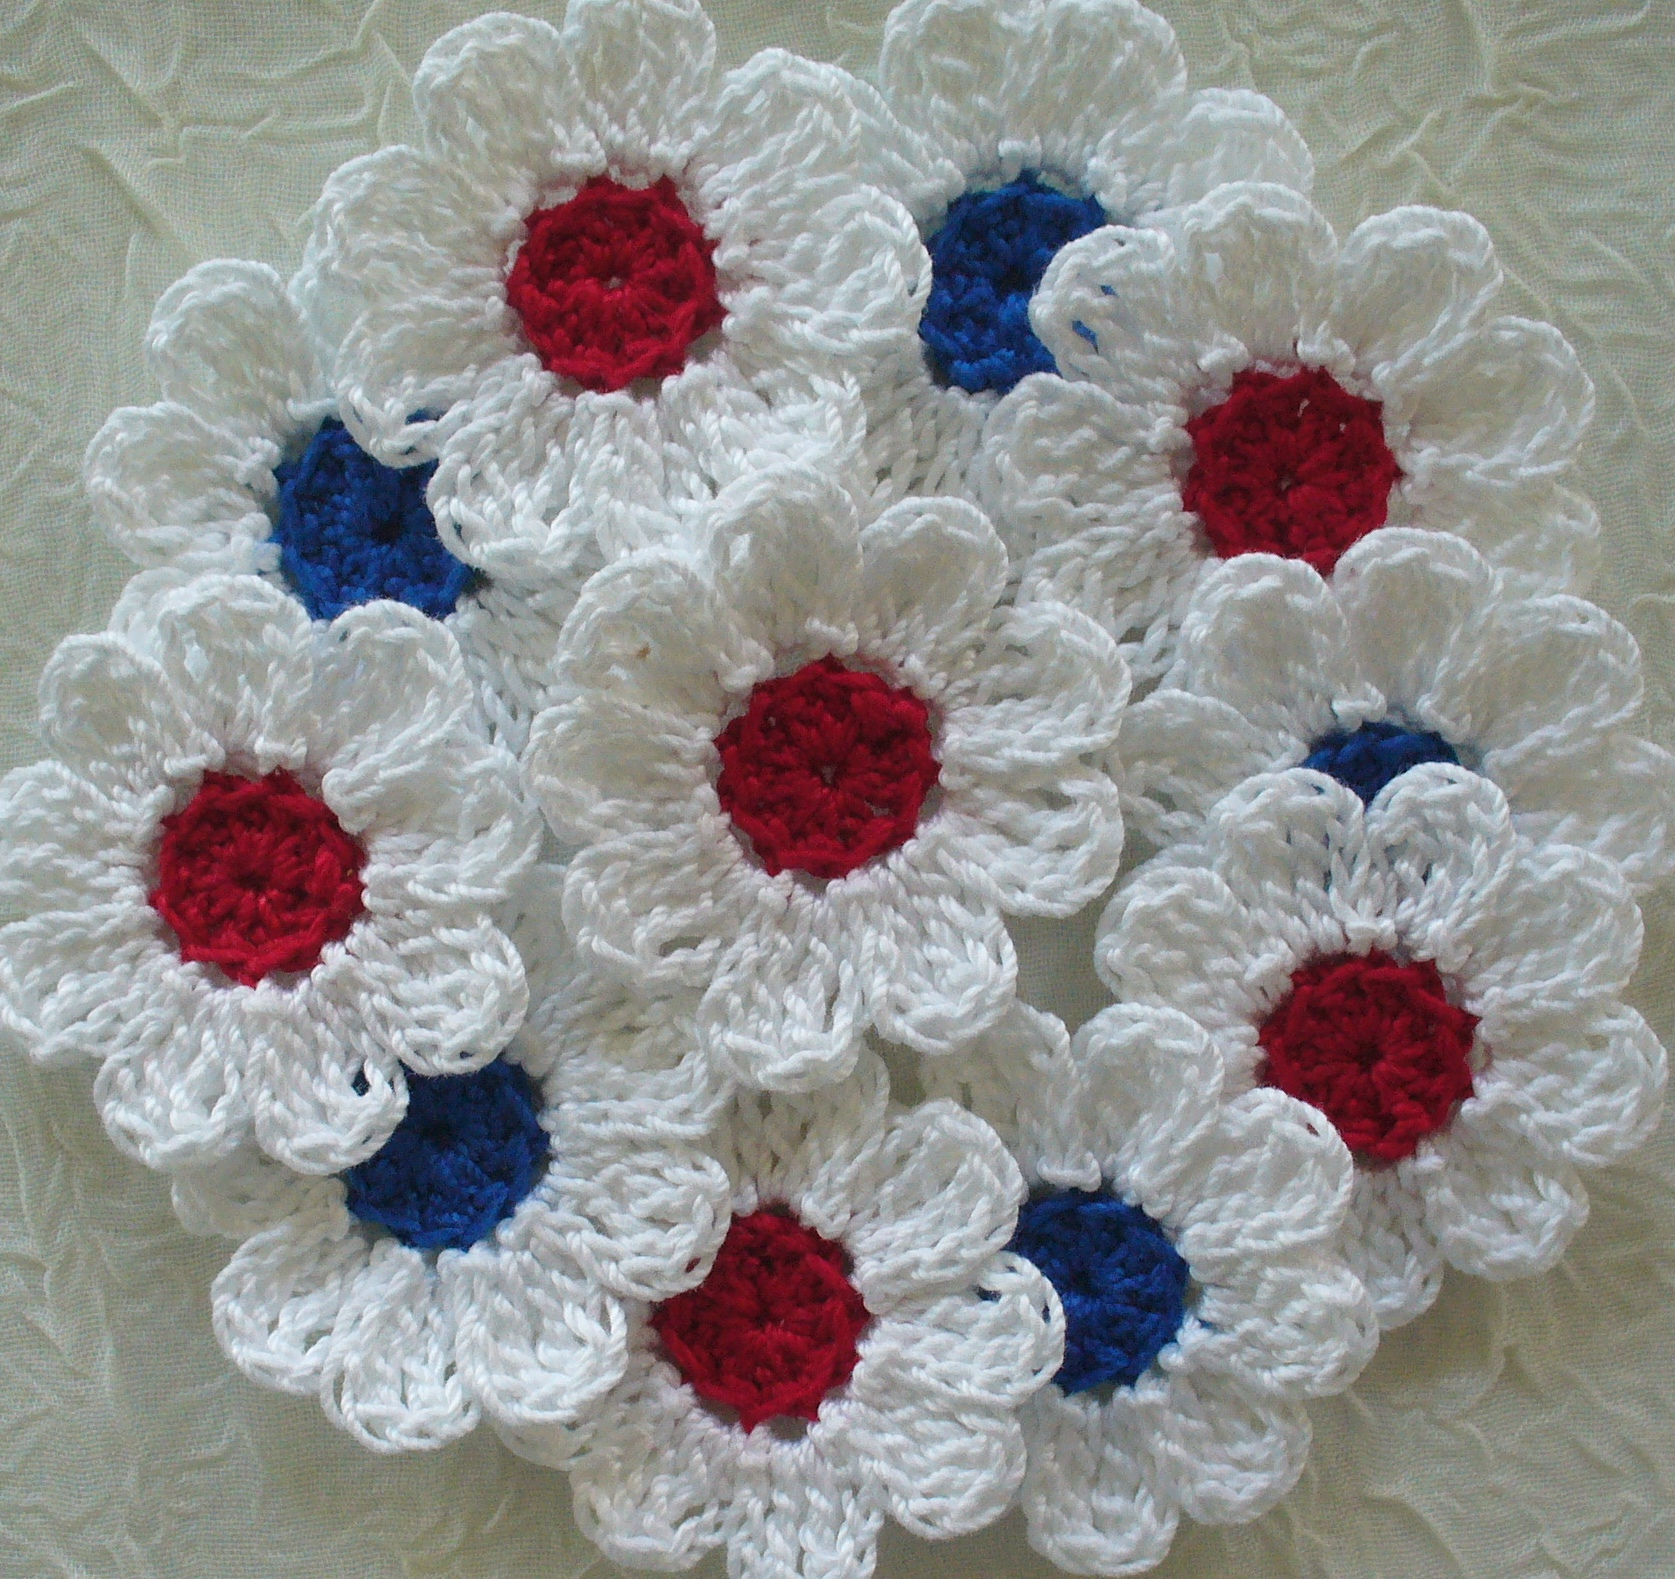 Red white and blue crochet daisy flowers set of 16 appliques red white and blue crochet daisy flowers set of 16 appliques embellishments izmirmasajfo